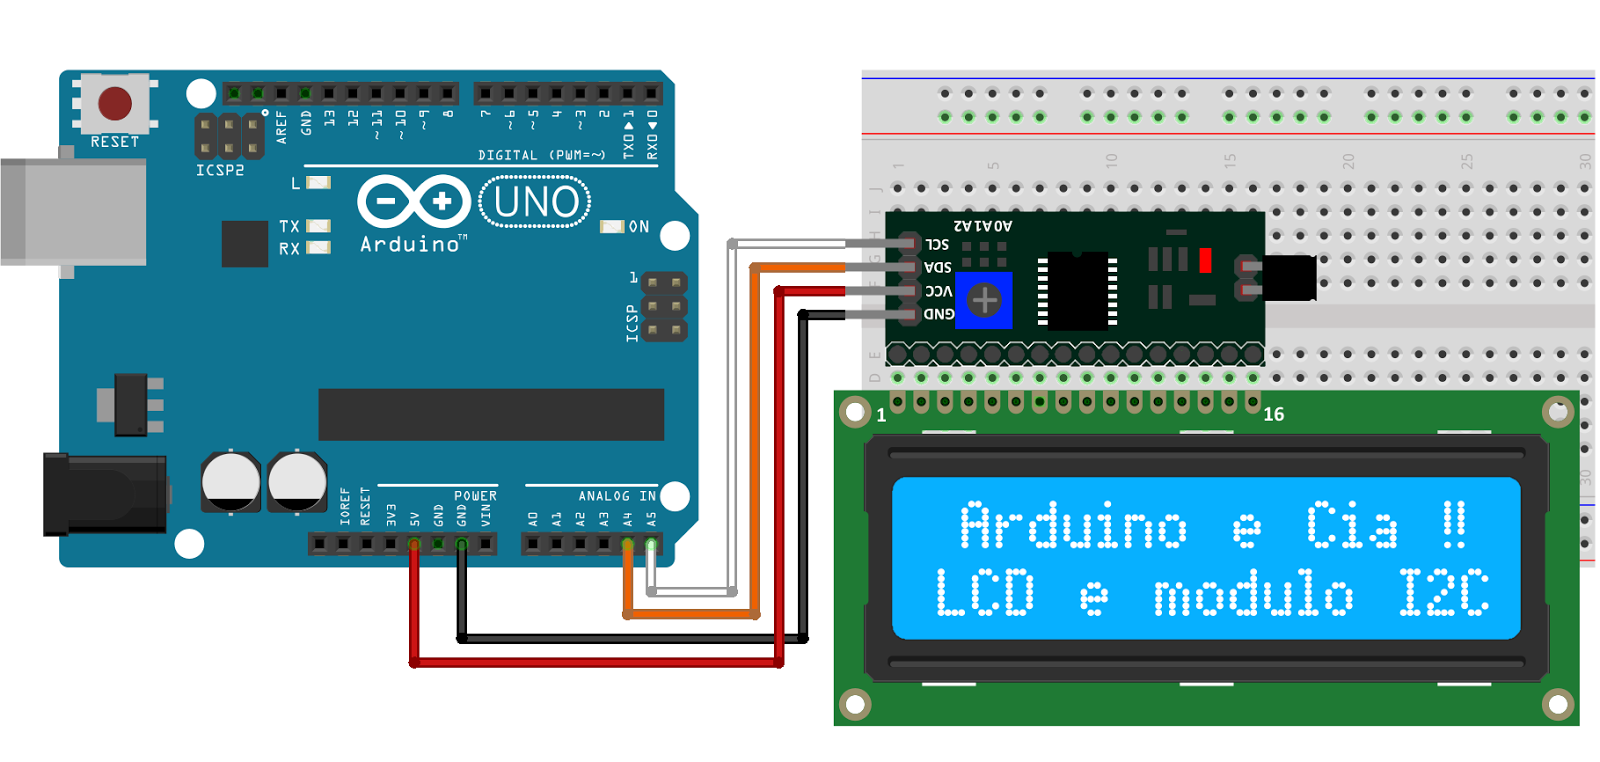 Disc for the book by arduino download torrent